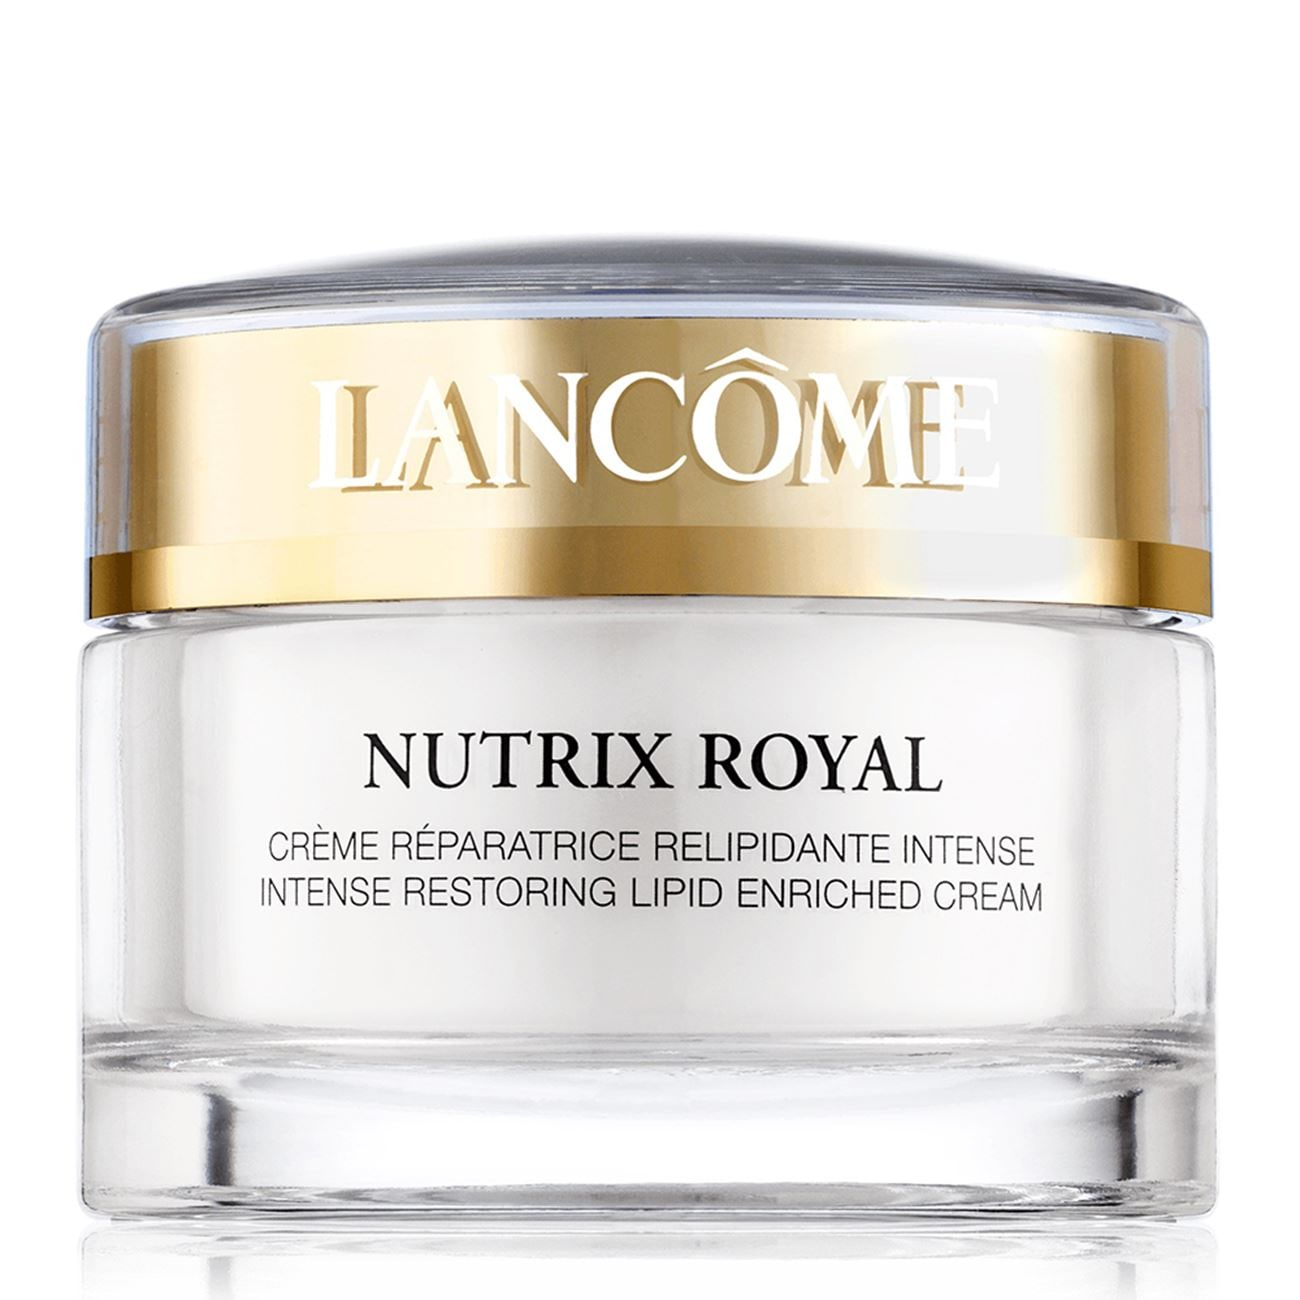 Nutrix Royal Creme